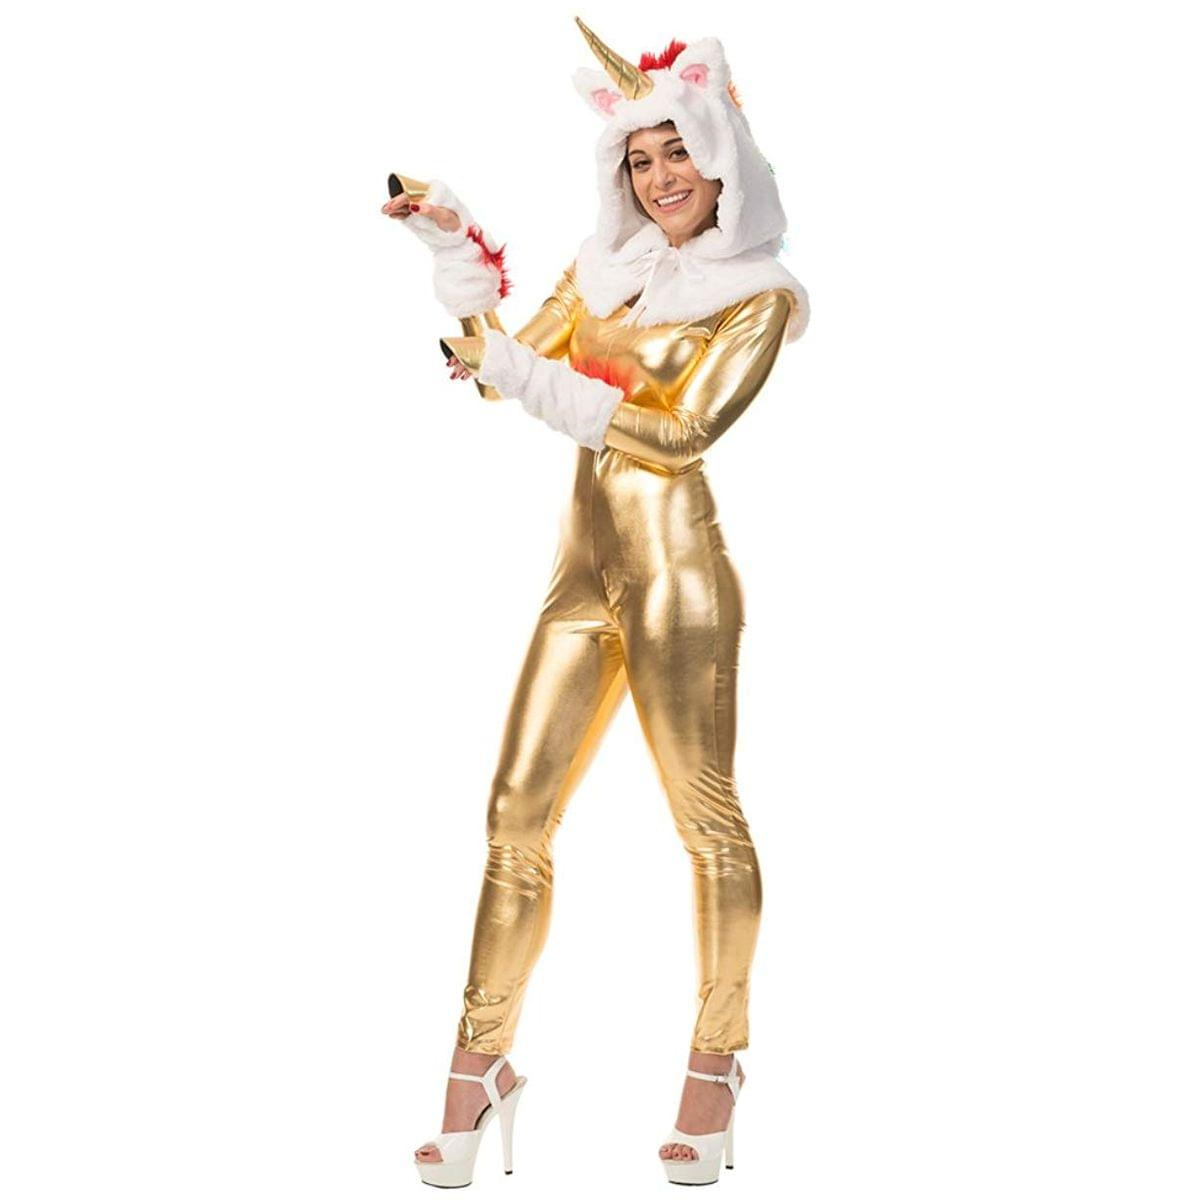 Unicorn Hood And Tail Adult Costume Kit, One Size